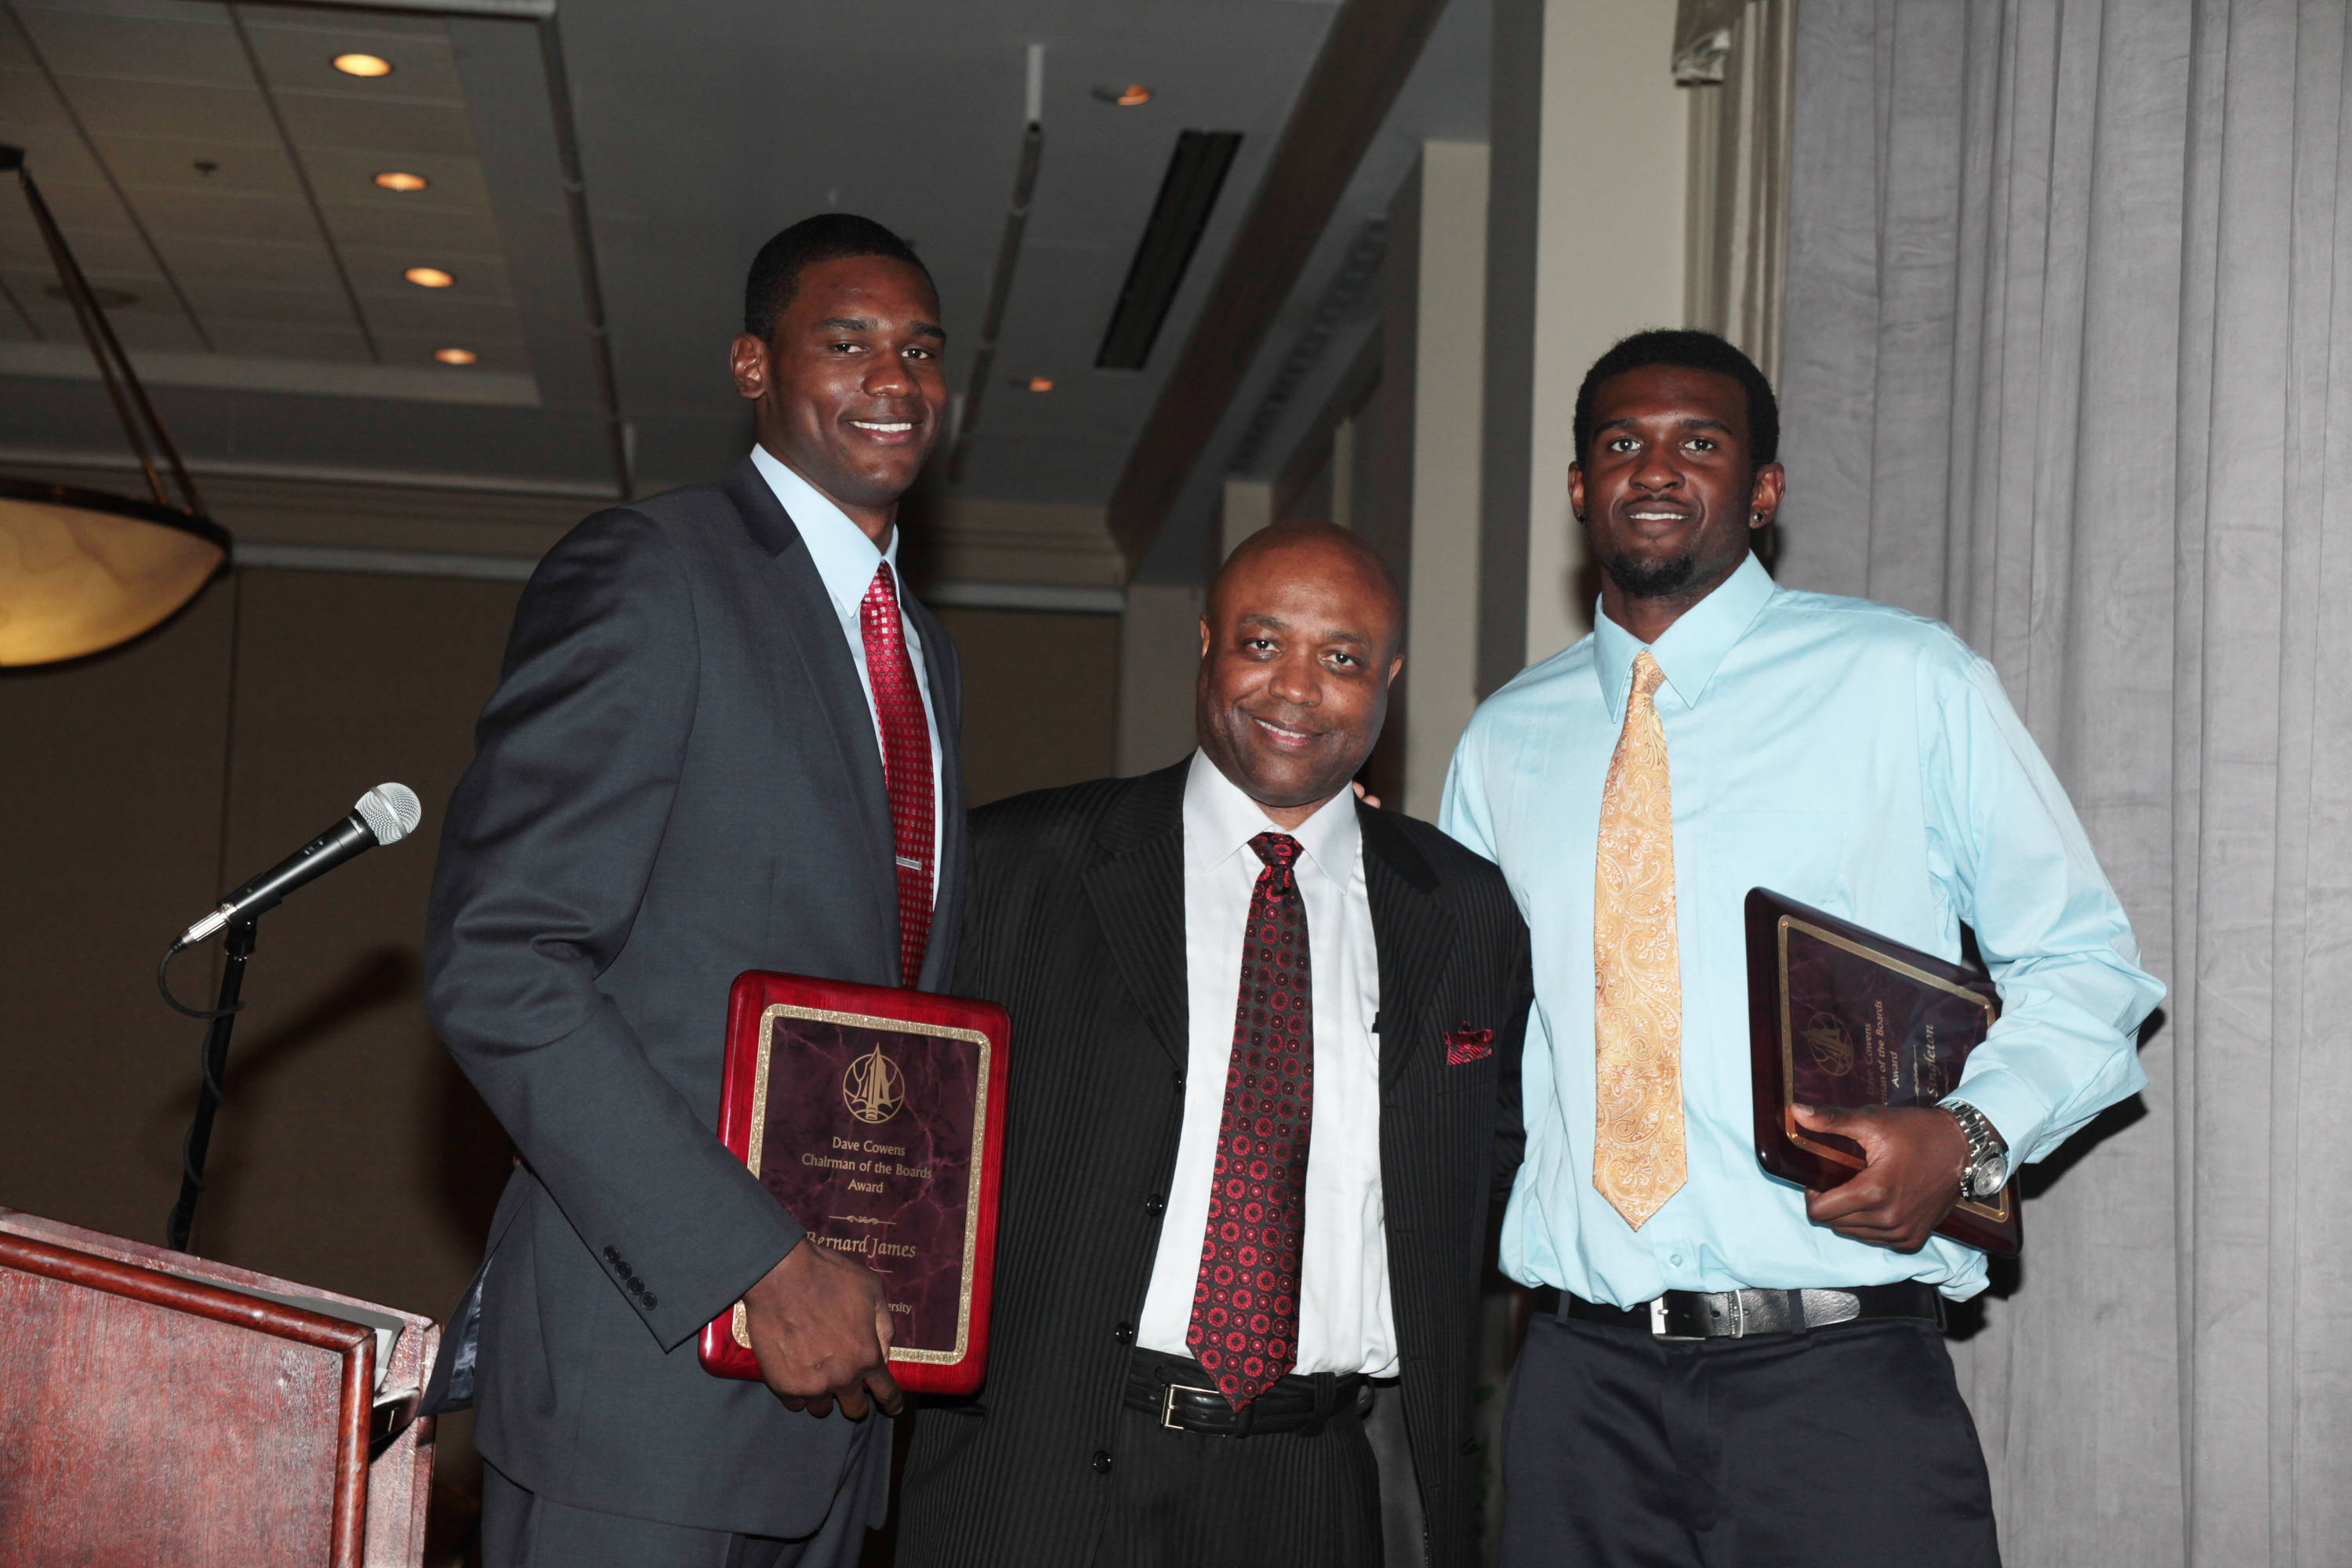 2011 Men's Basketball Banquet - Bernard James and Chris Singleton